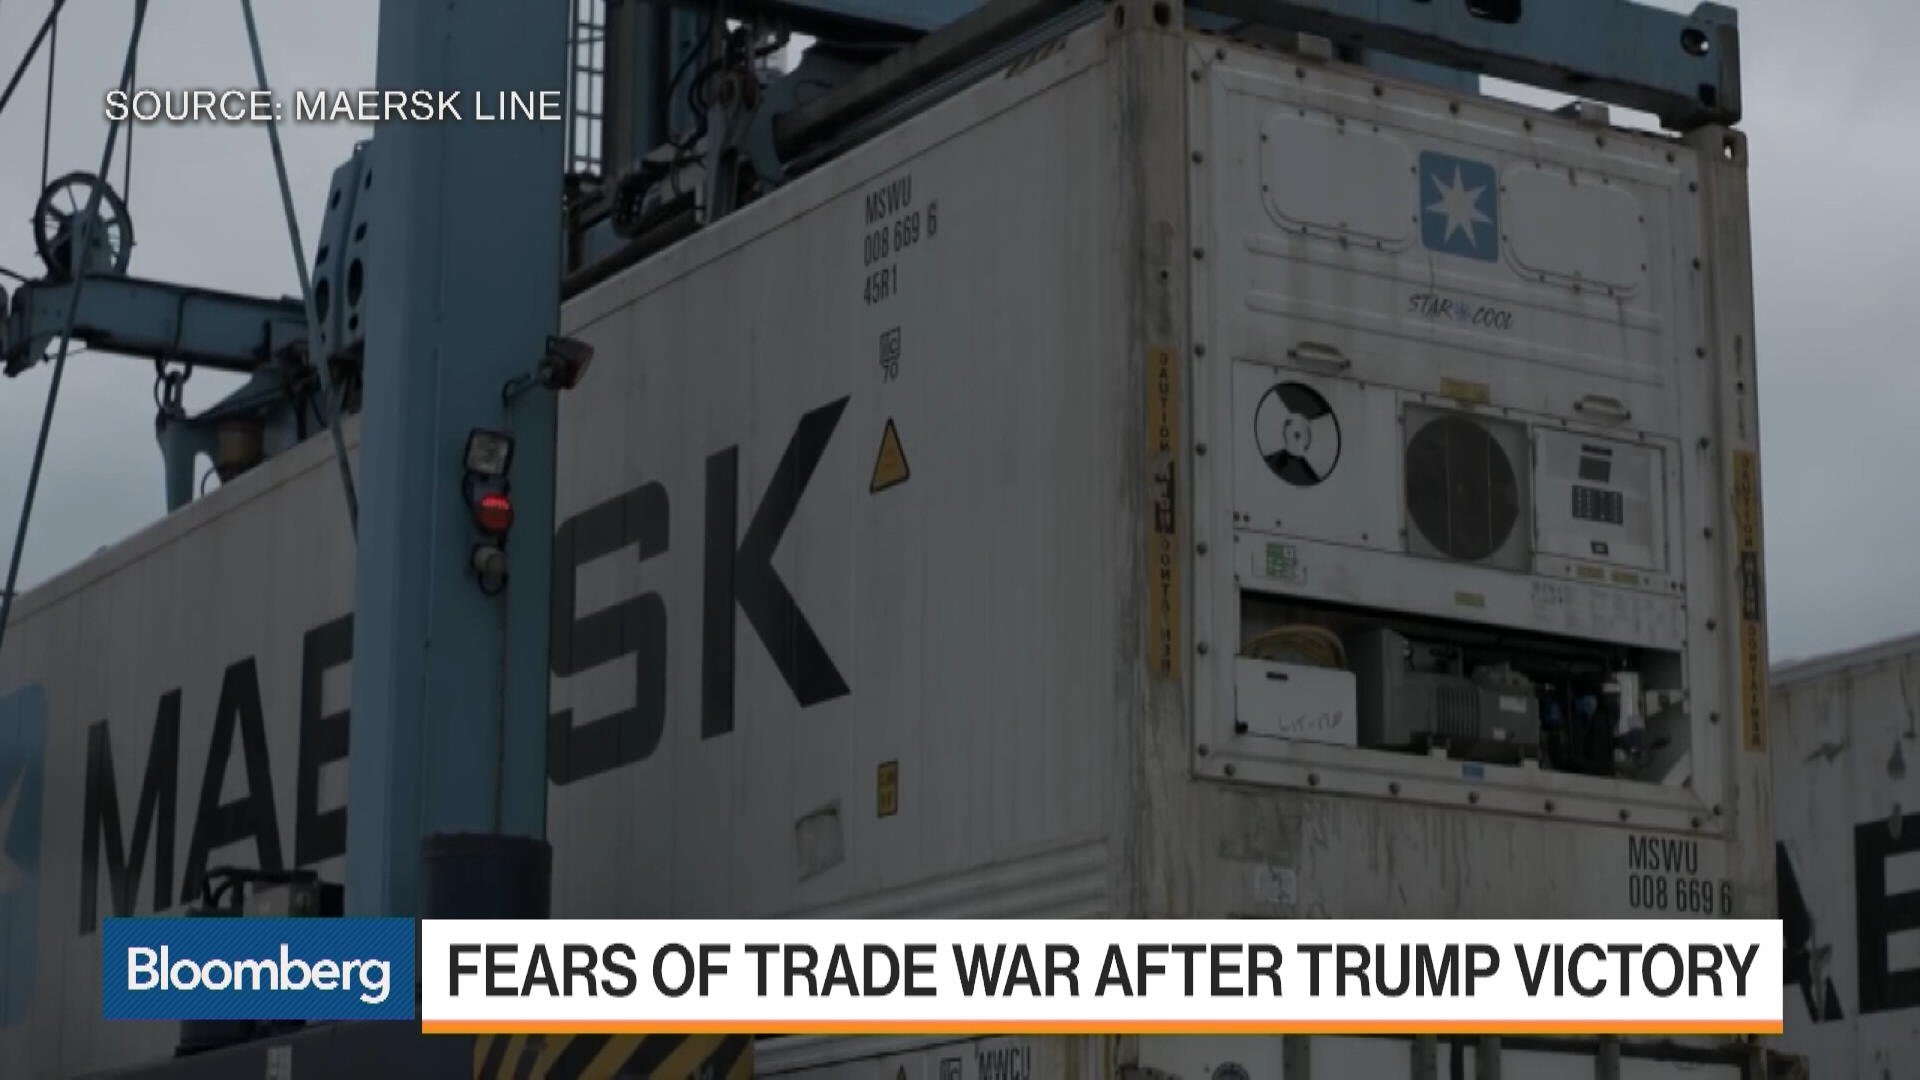 Maersk Line APAC CEO: Container Shipping Still in Trouble - Bloomberg